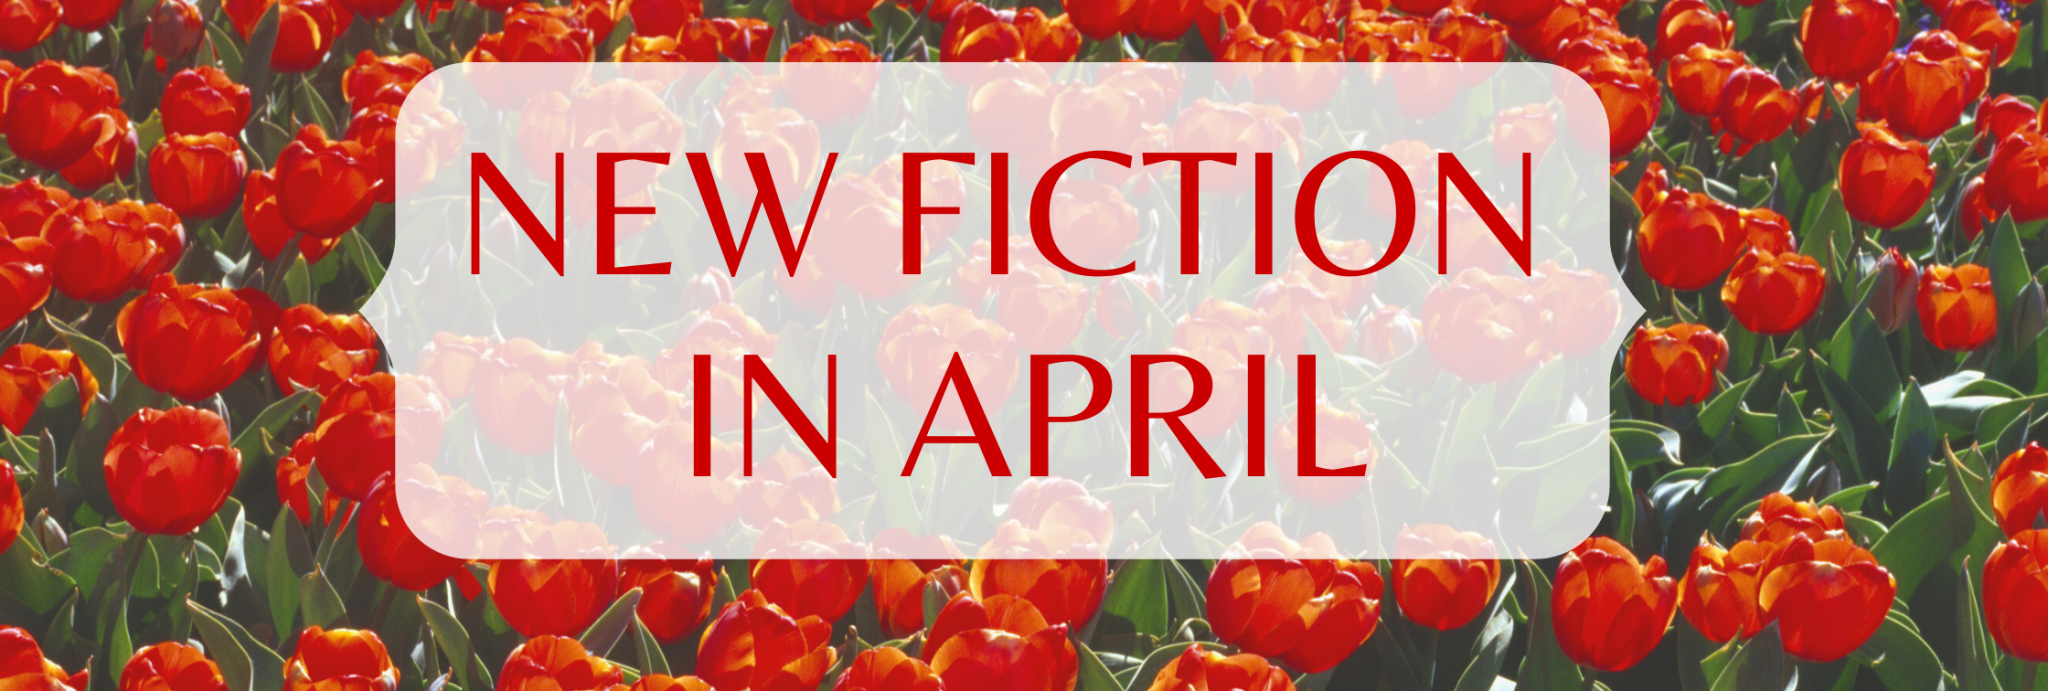 New Fiction in April